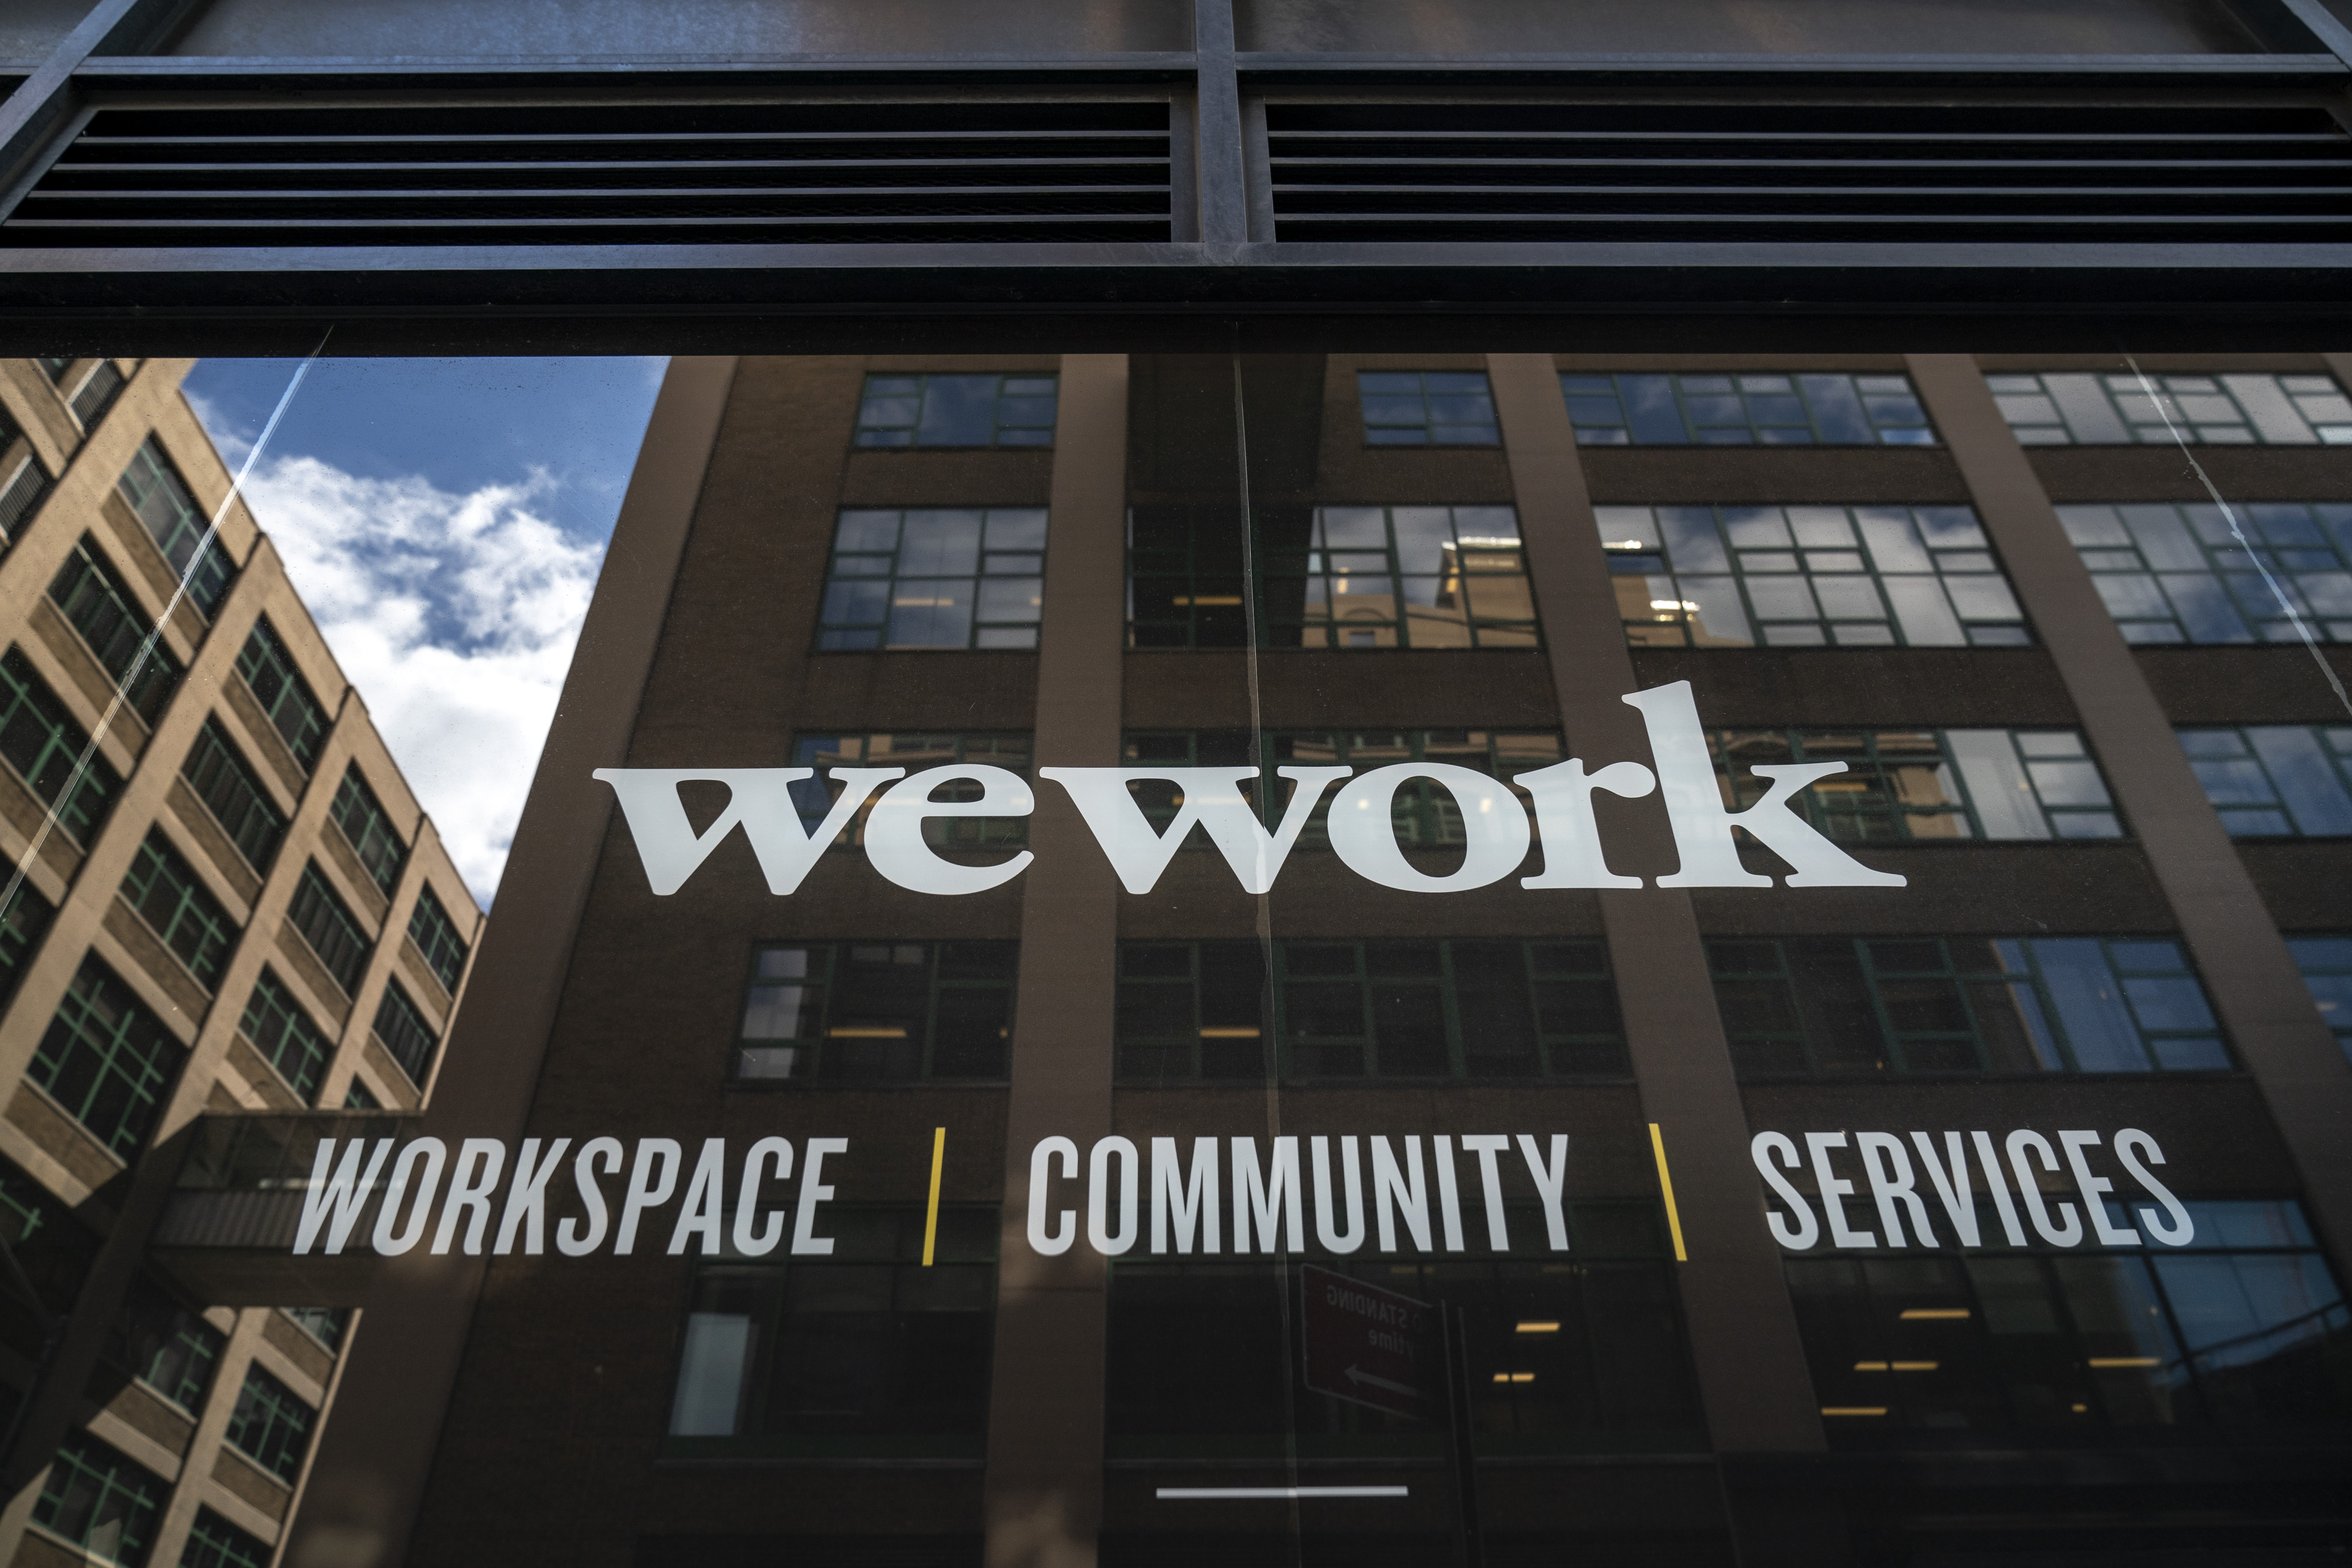 """WeWork sign that reads """"WeWork workspace, community, services"""" on a building in DUMBO, Brooklyn, with other buildings and the sky reflected in it."""